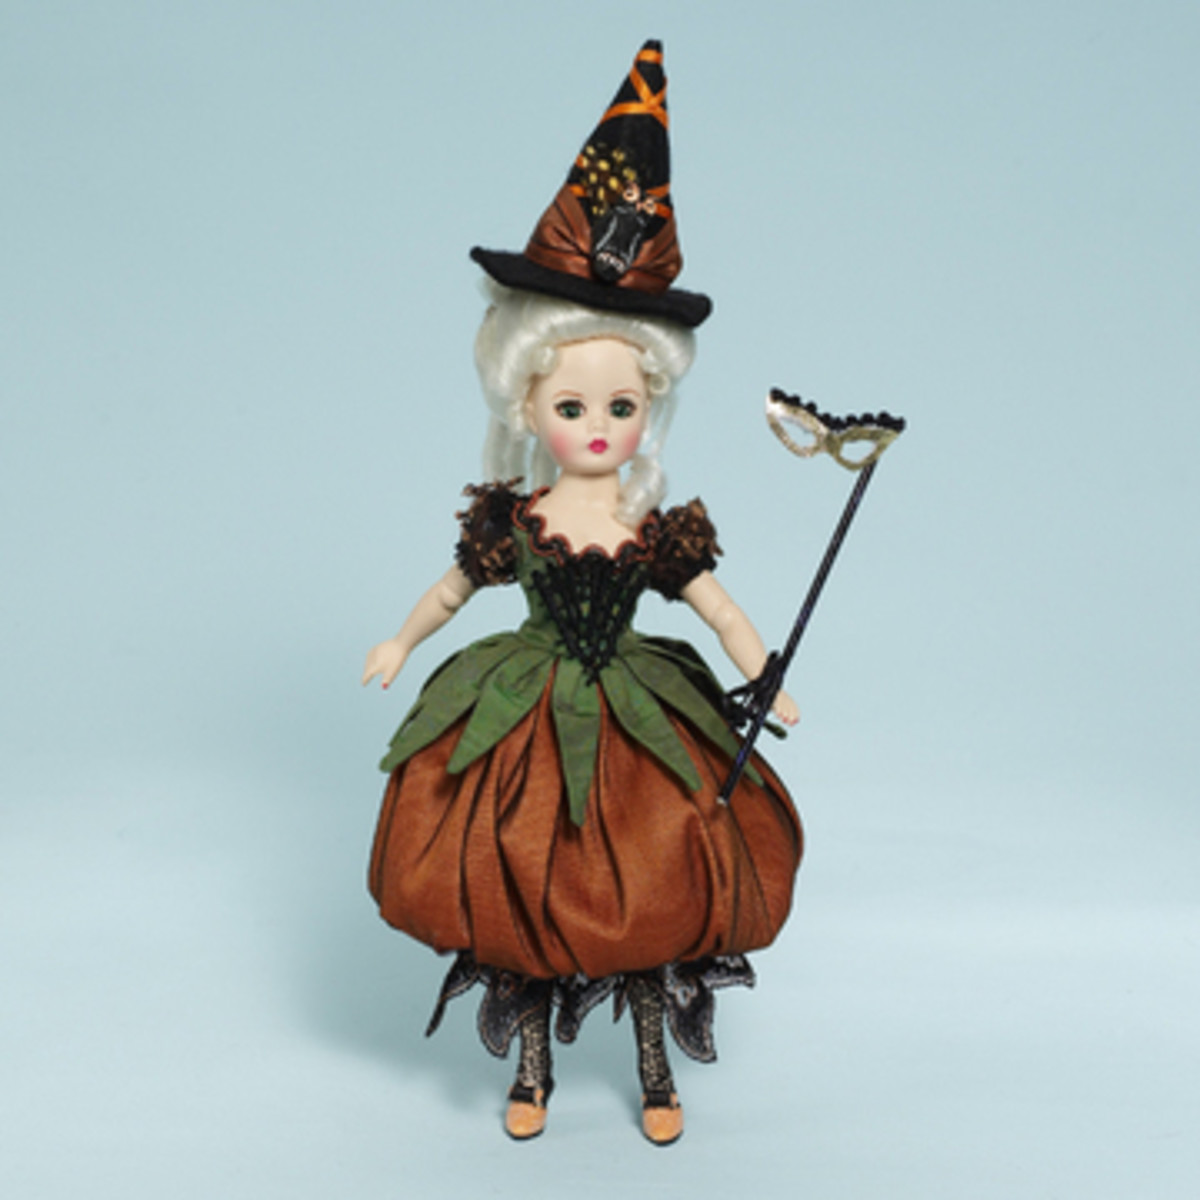 Elegant Witch Doll with Wand and Hat by Madame Alexander - Dress is Pumpkin Shaped